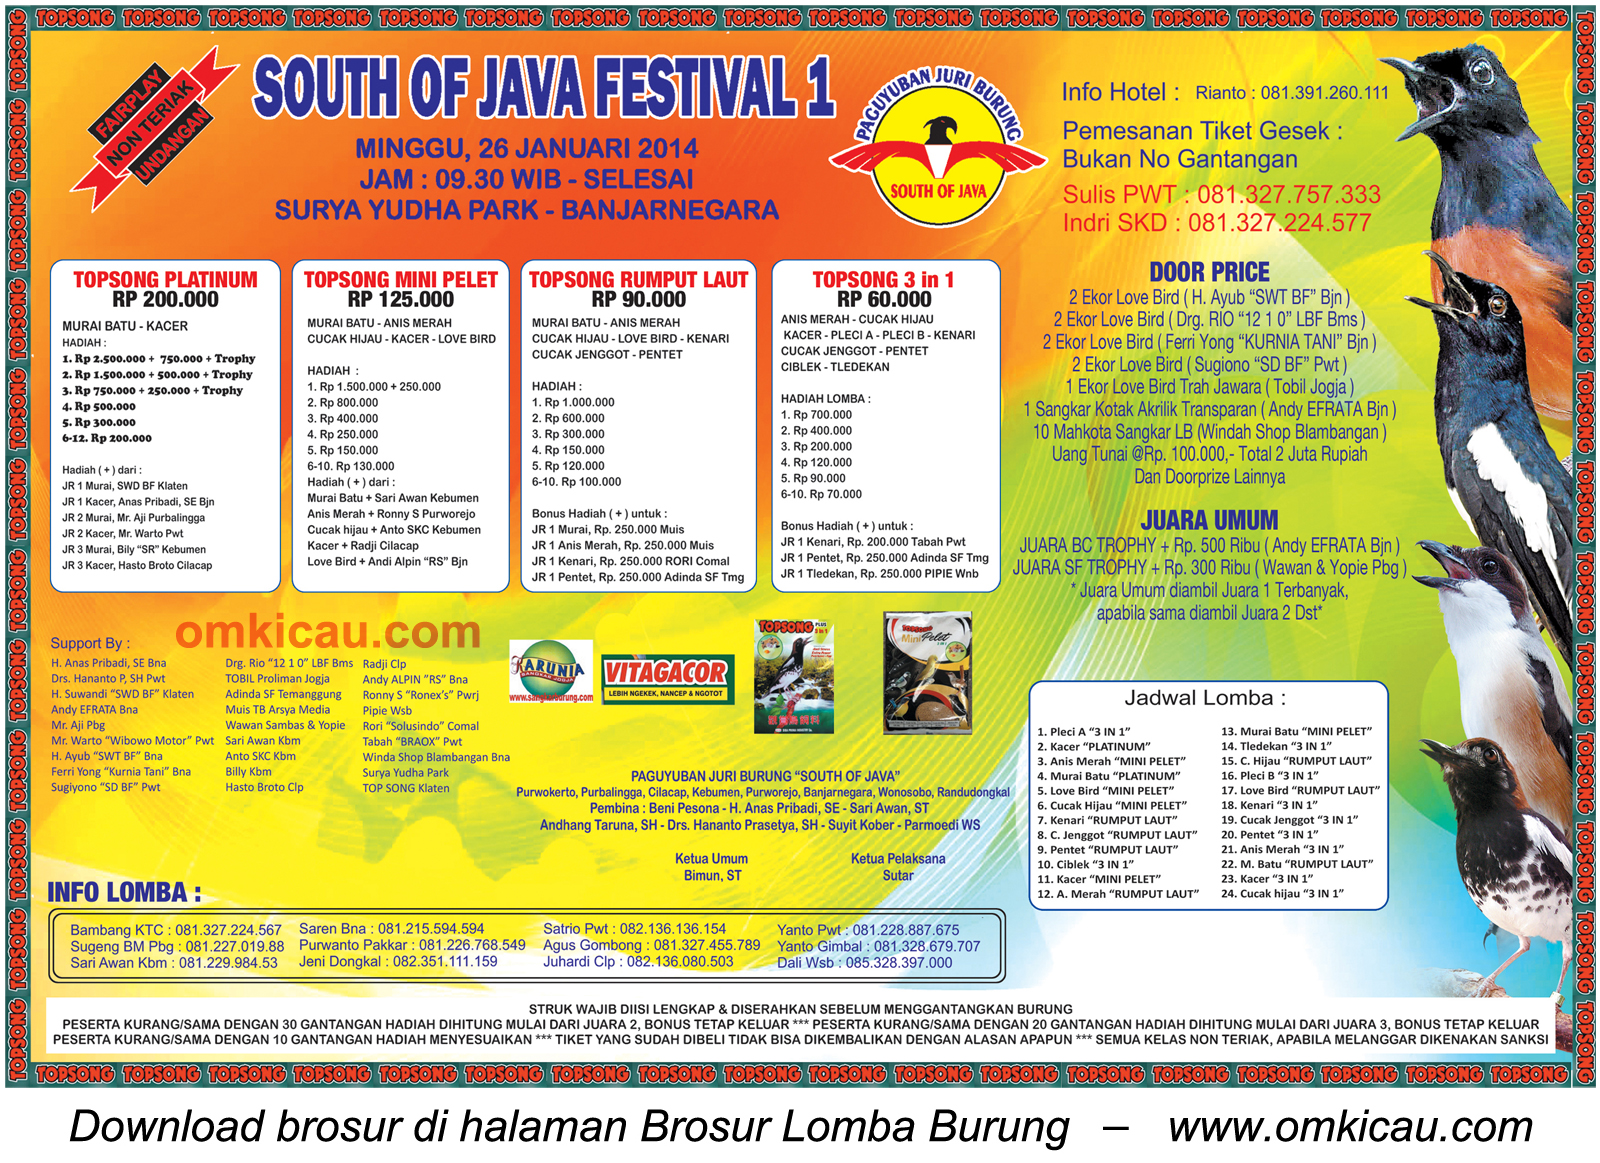 Brosur Lomba Burung Berkicau South of Java Festival 1, Banjarnegara, 26 Januari 2014